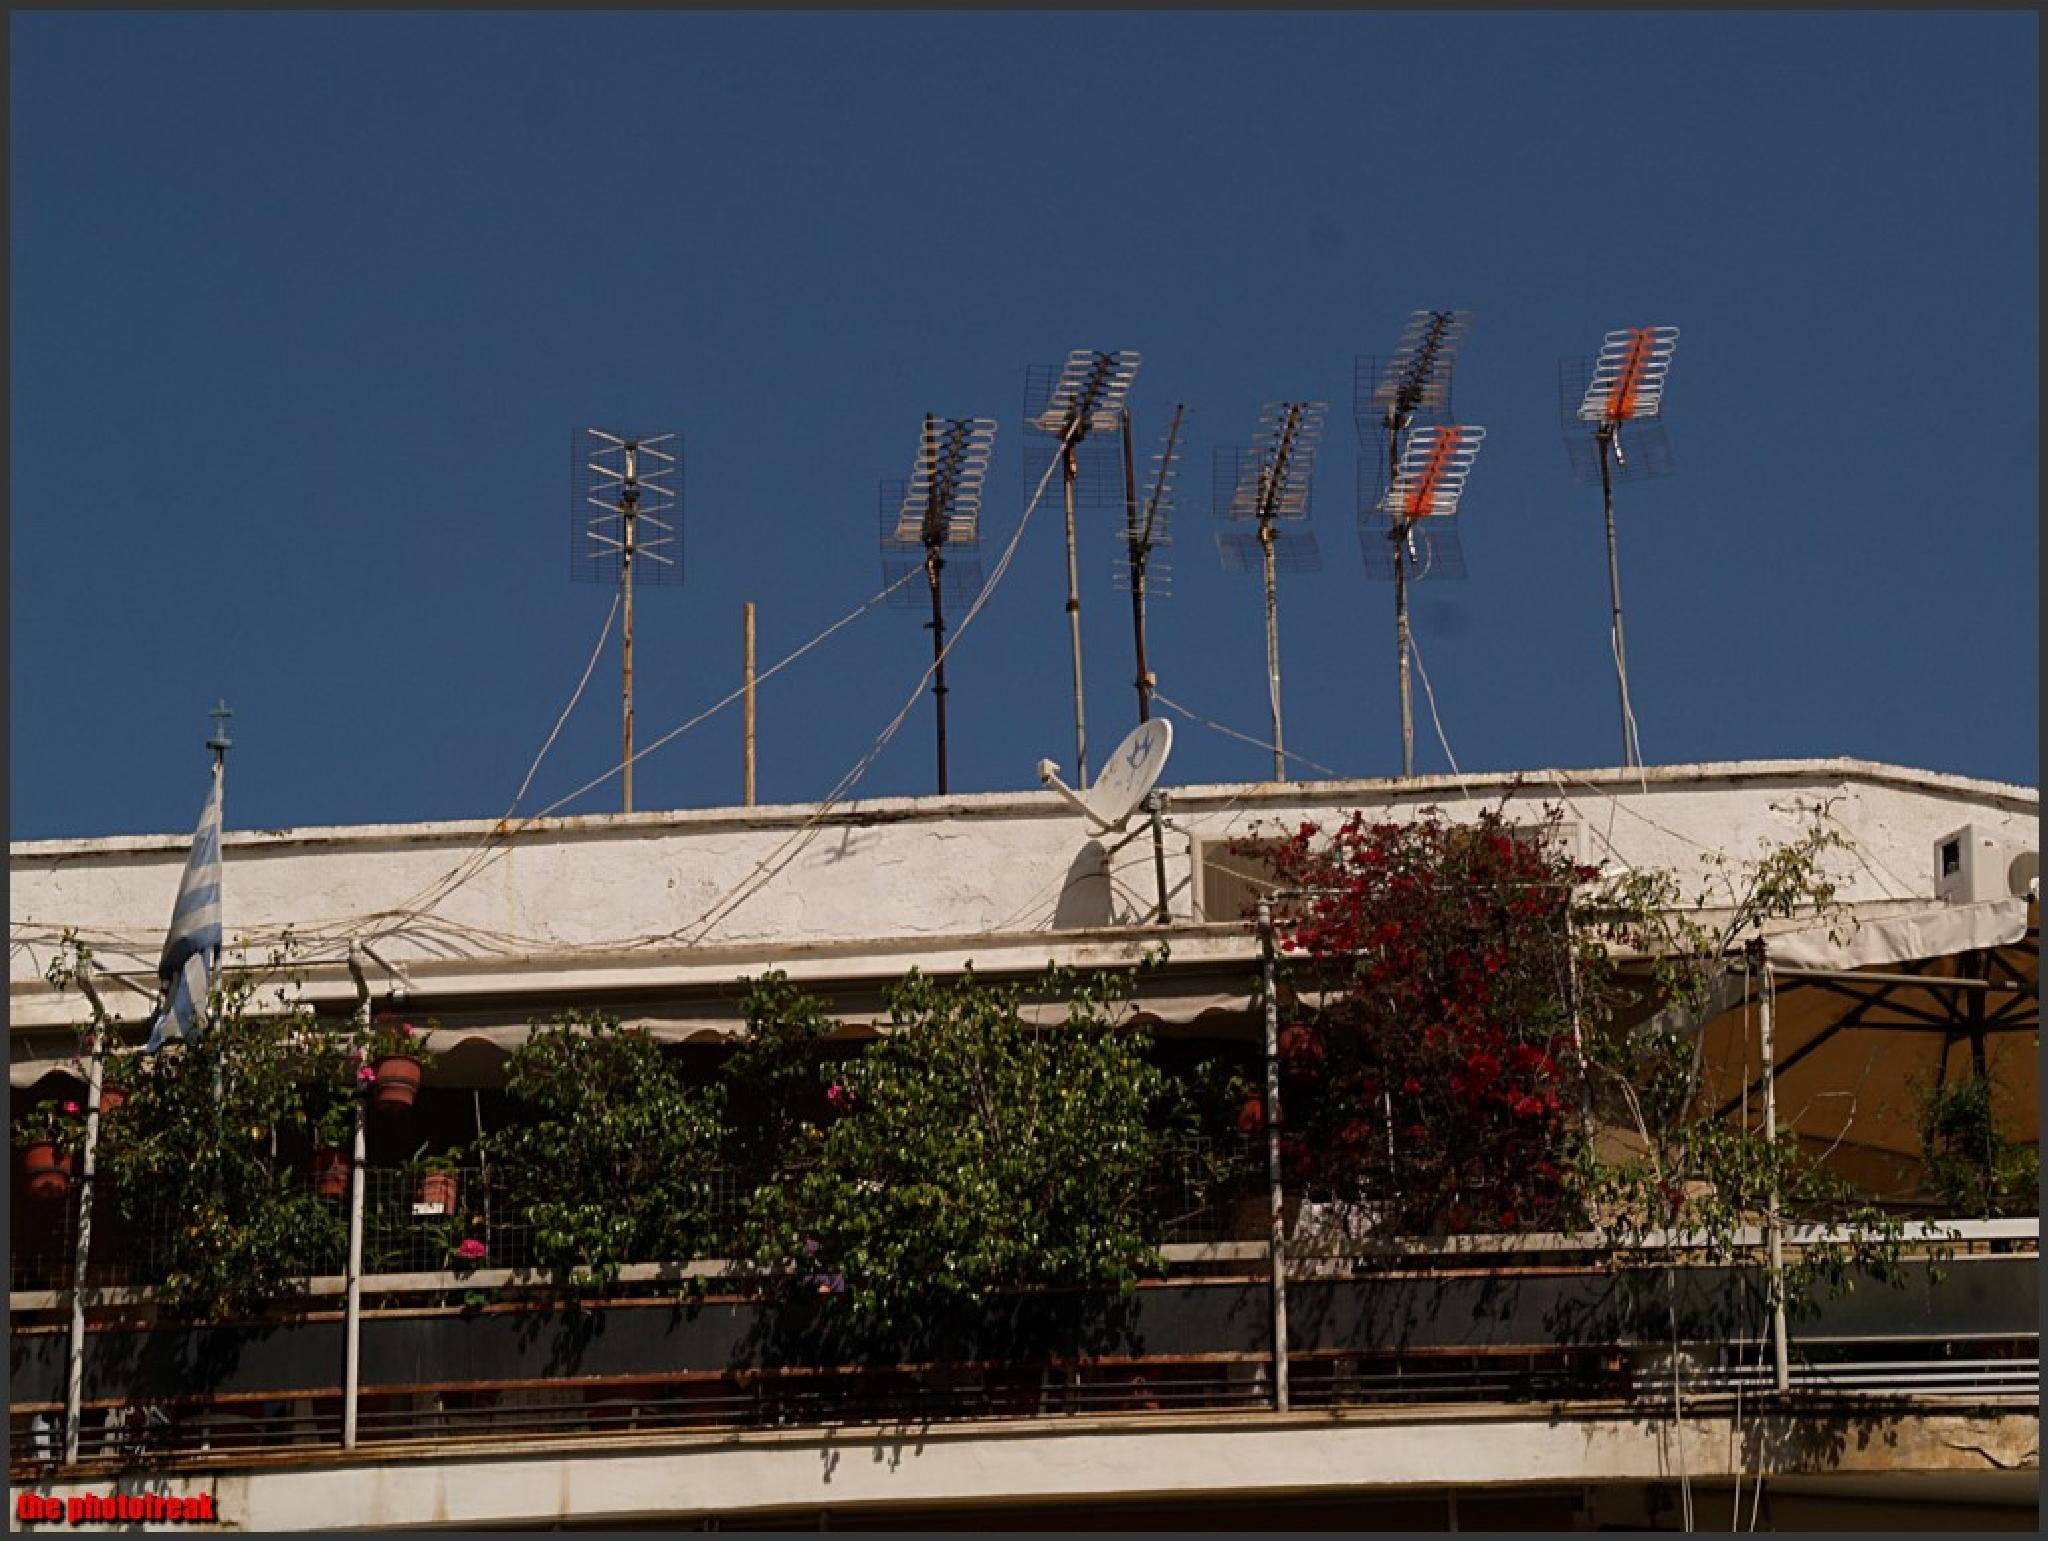 antennas of greece by harrythephotofreak